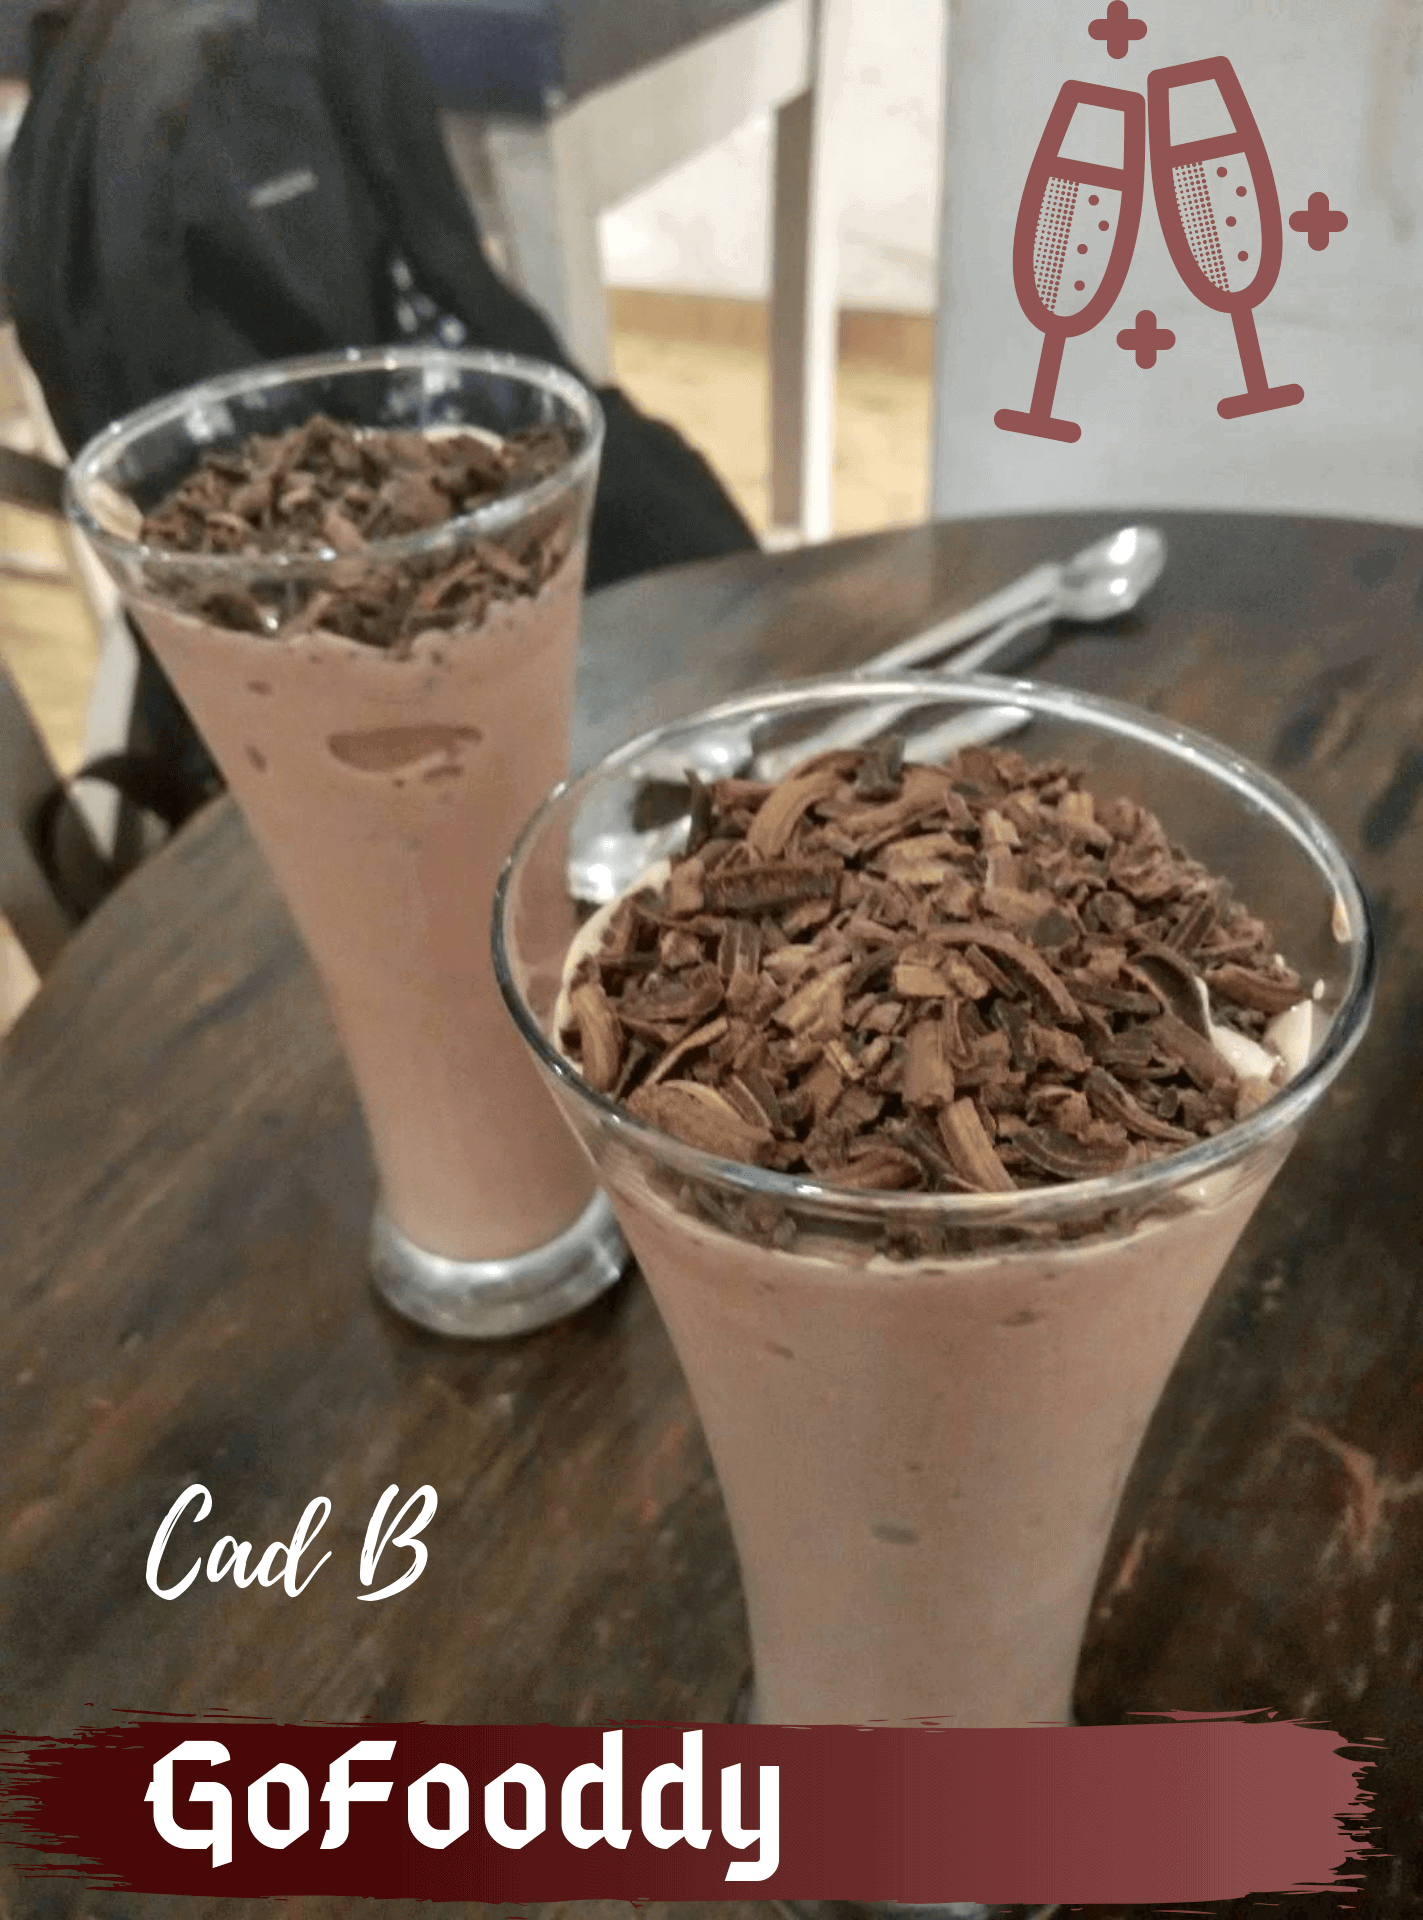 cad-b-the-indulgence-of-dark-chocolate